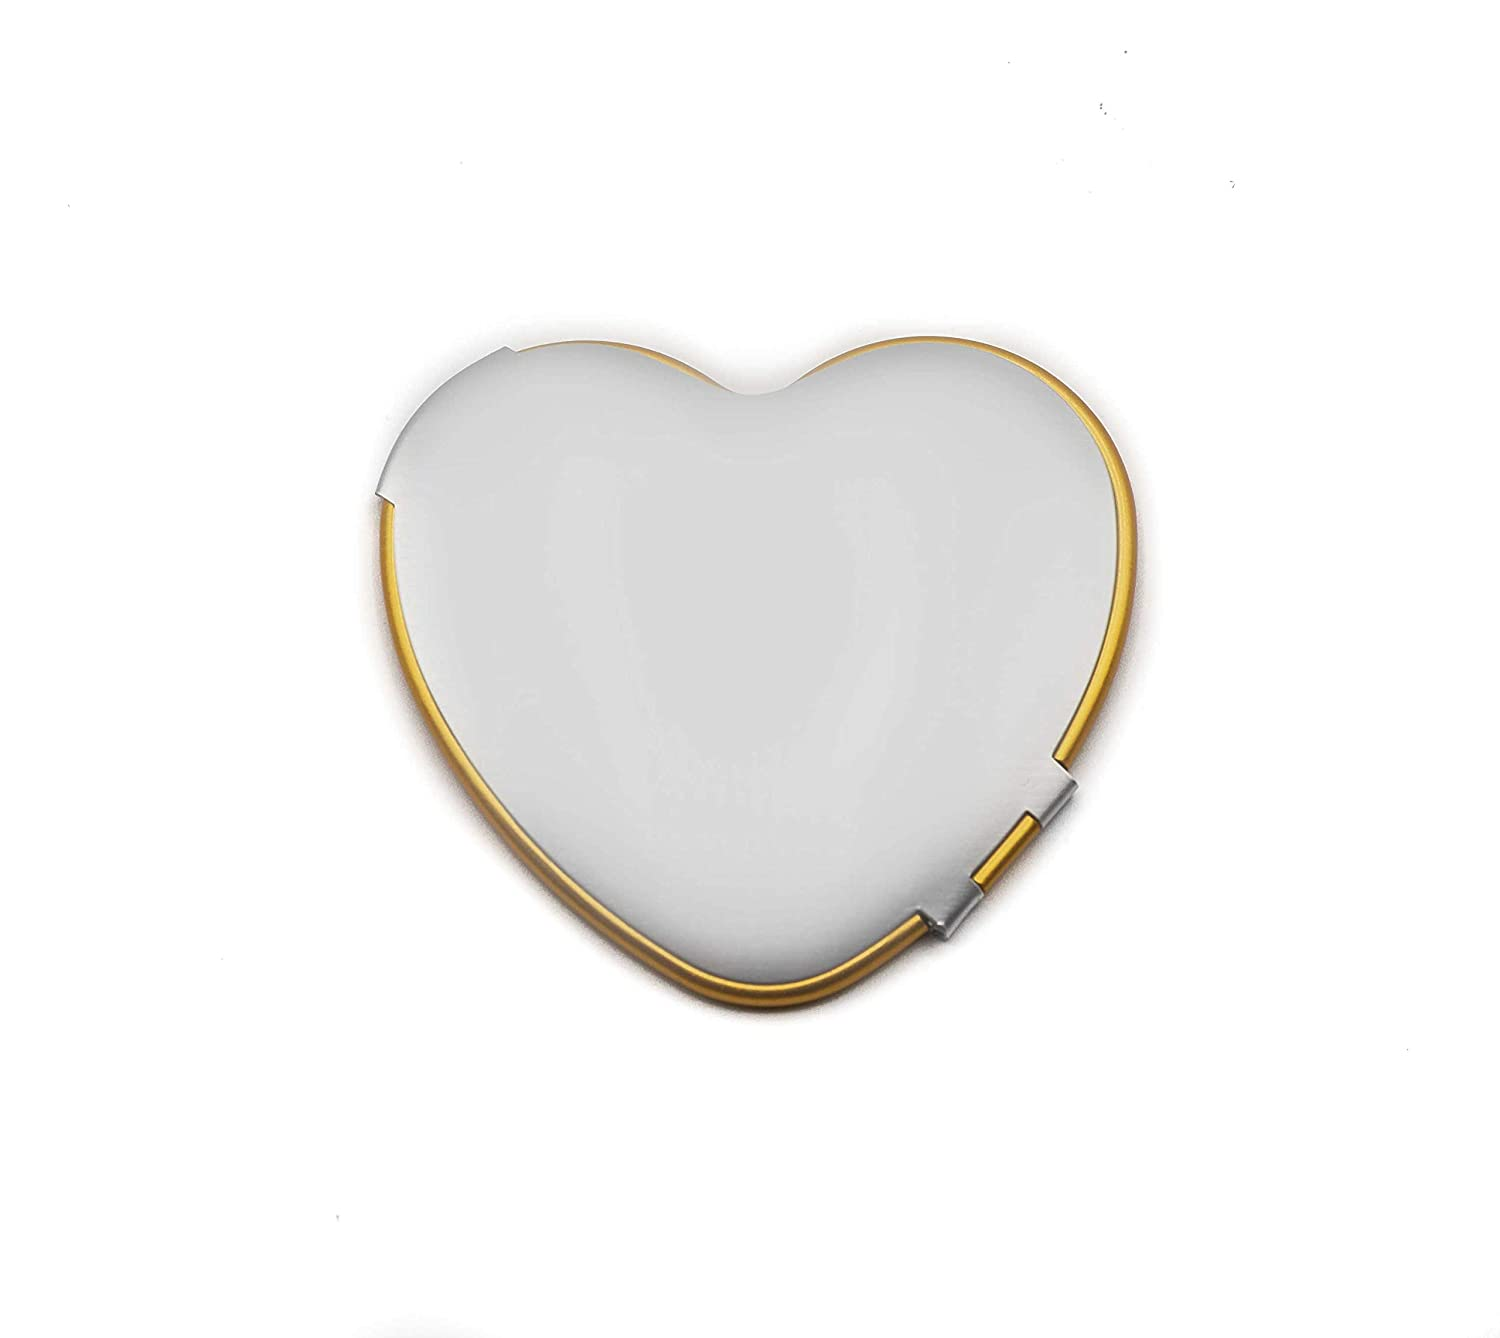 Ladies Pocket Mirror For Purse Ranking TOP4 2021 new Compac Collectible Small Elegant